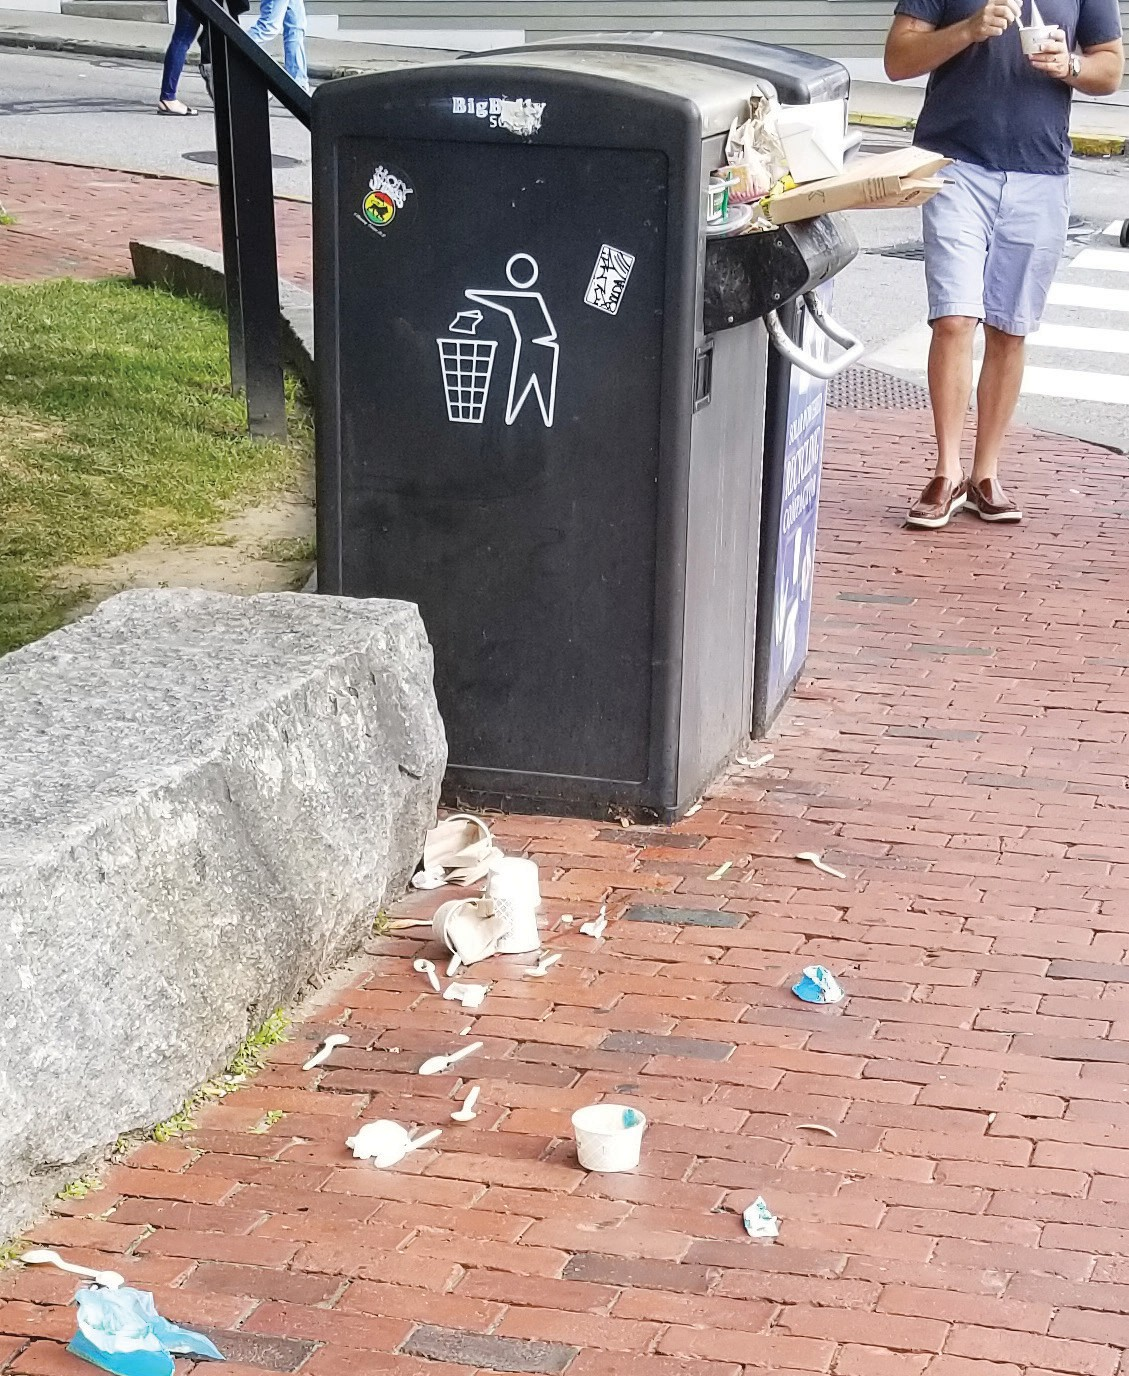 Bigbelly Trash Bins Raise a Stink | Newport This Week